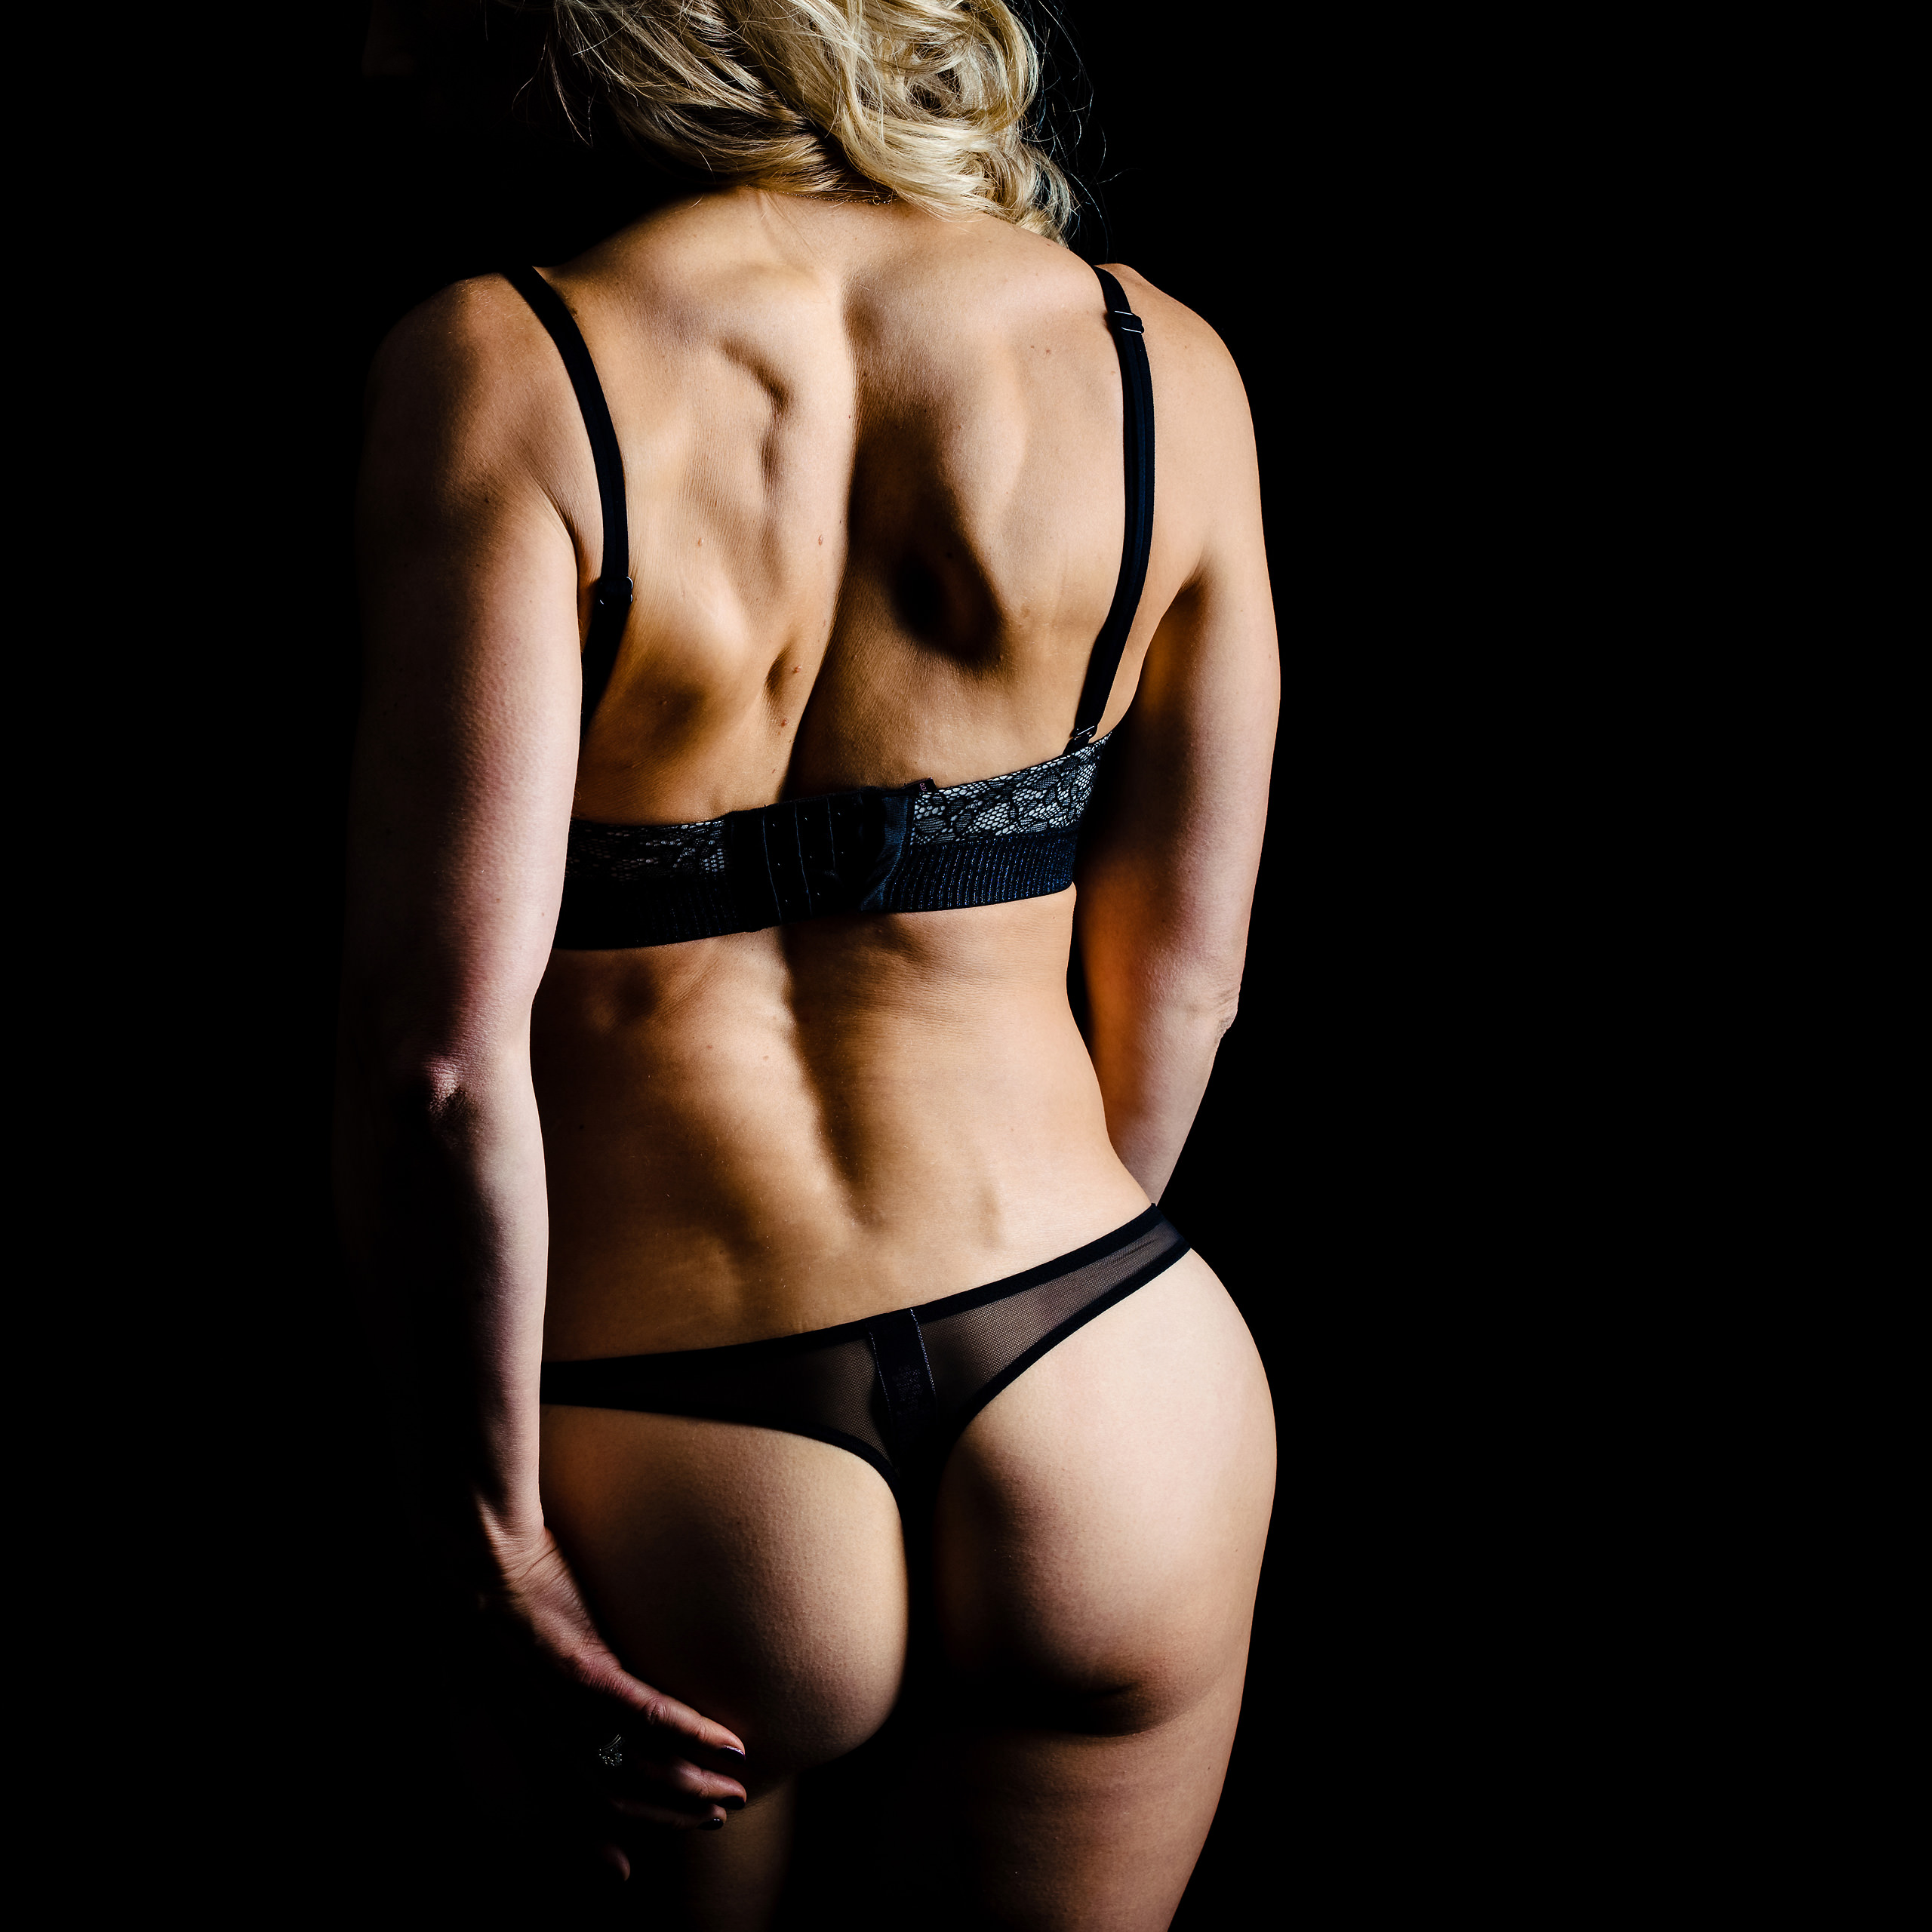 A woman in lingerie for shimmer boudoir experiences by sean leblanc photography